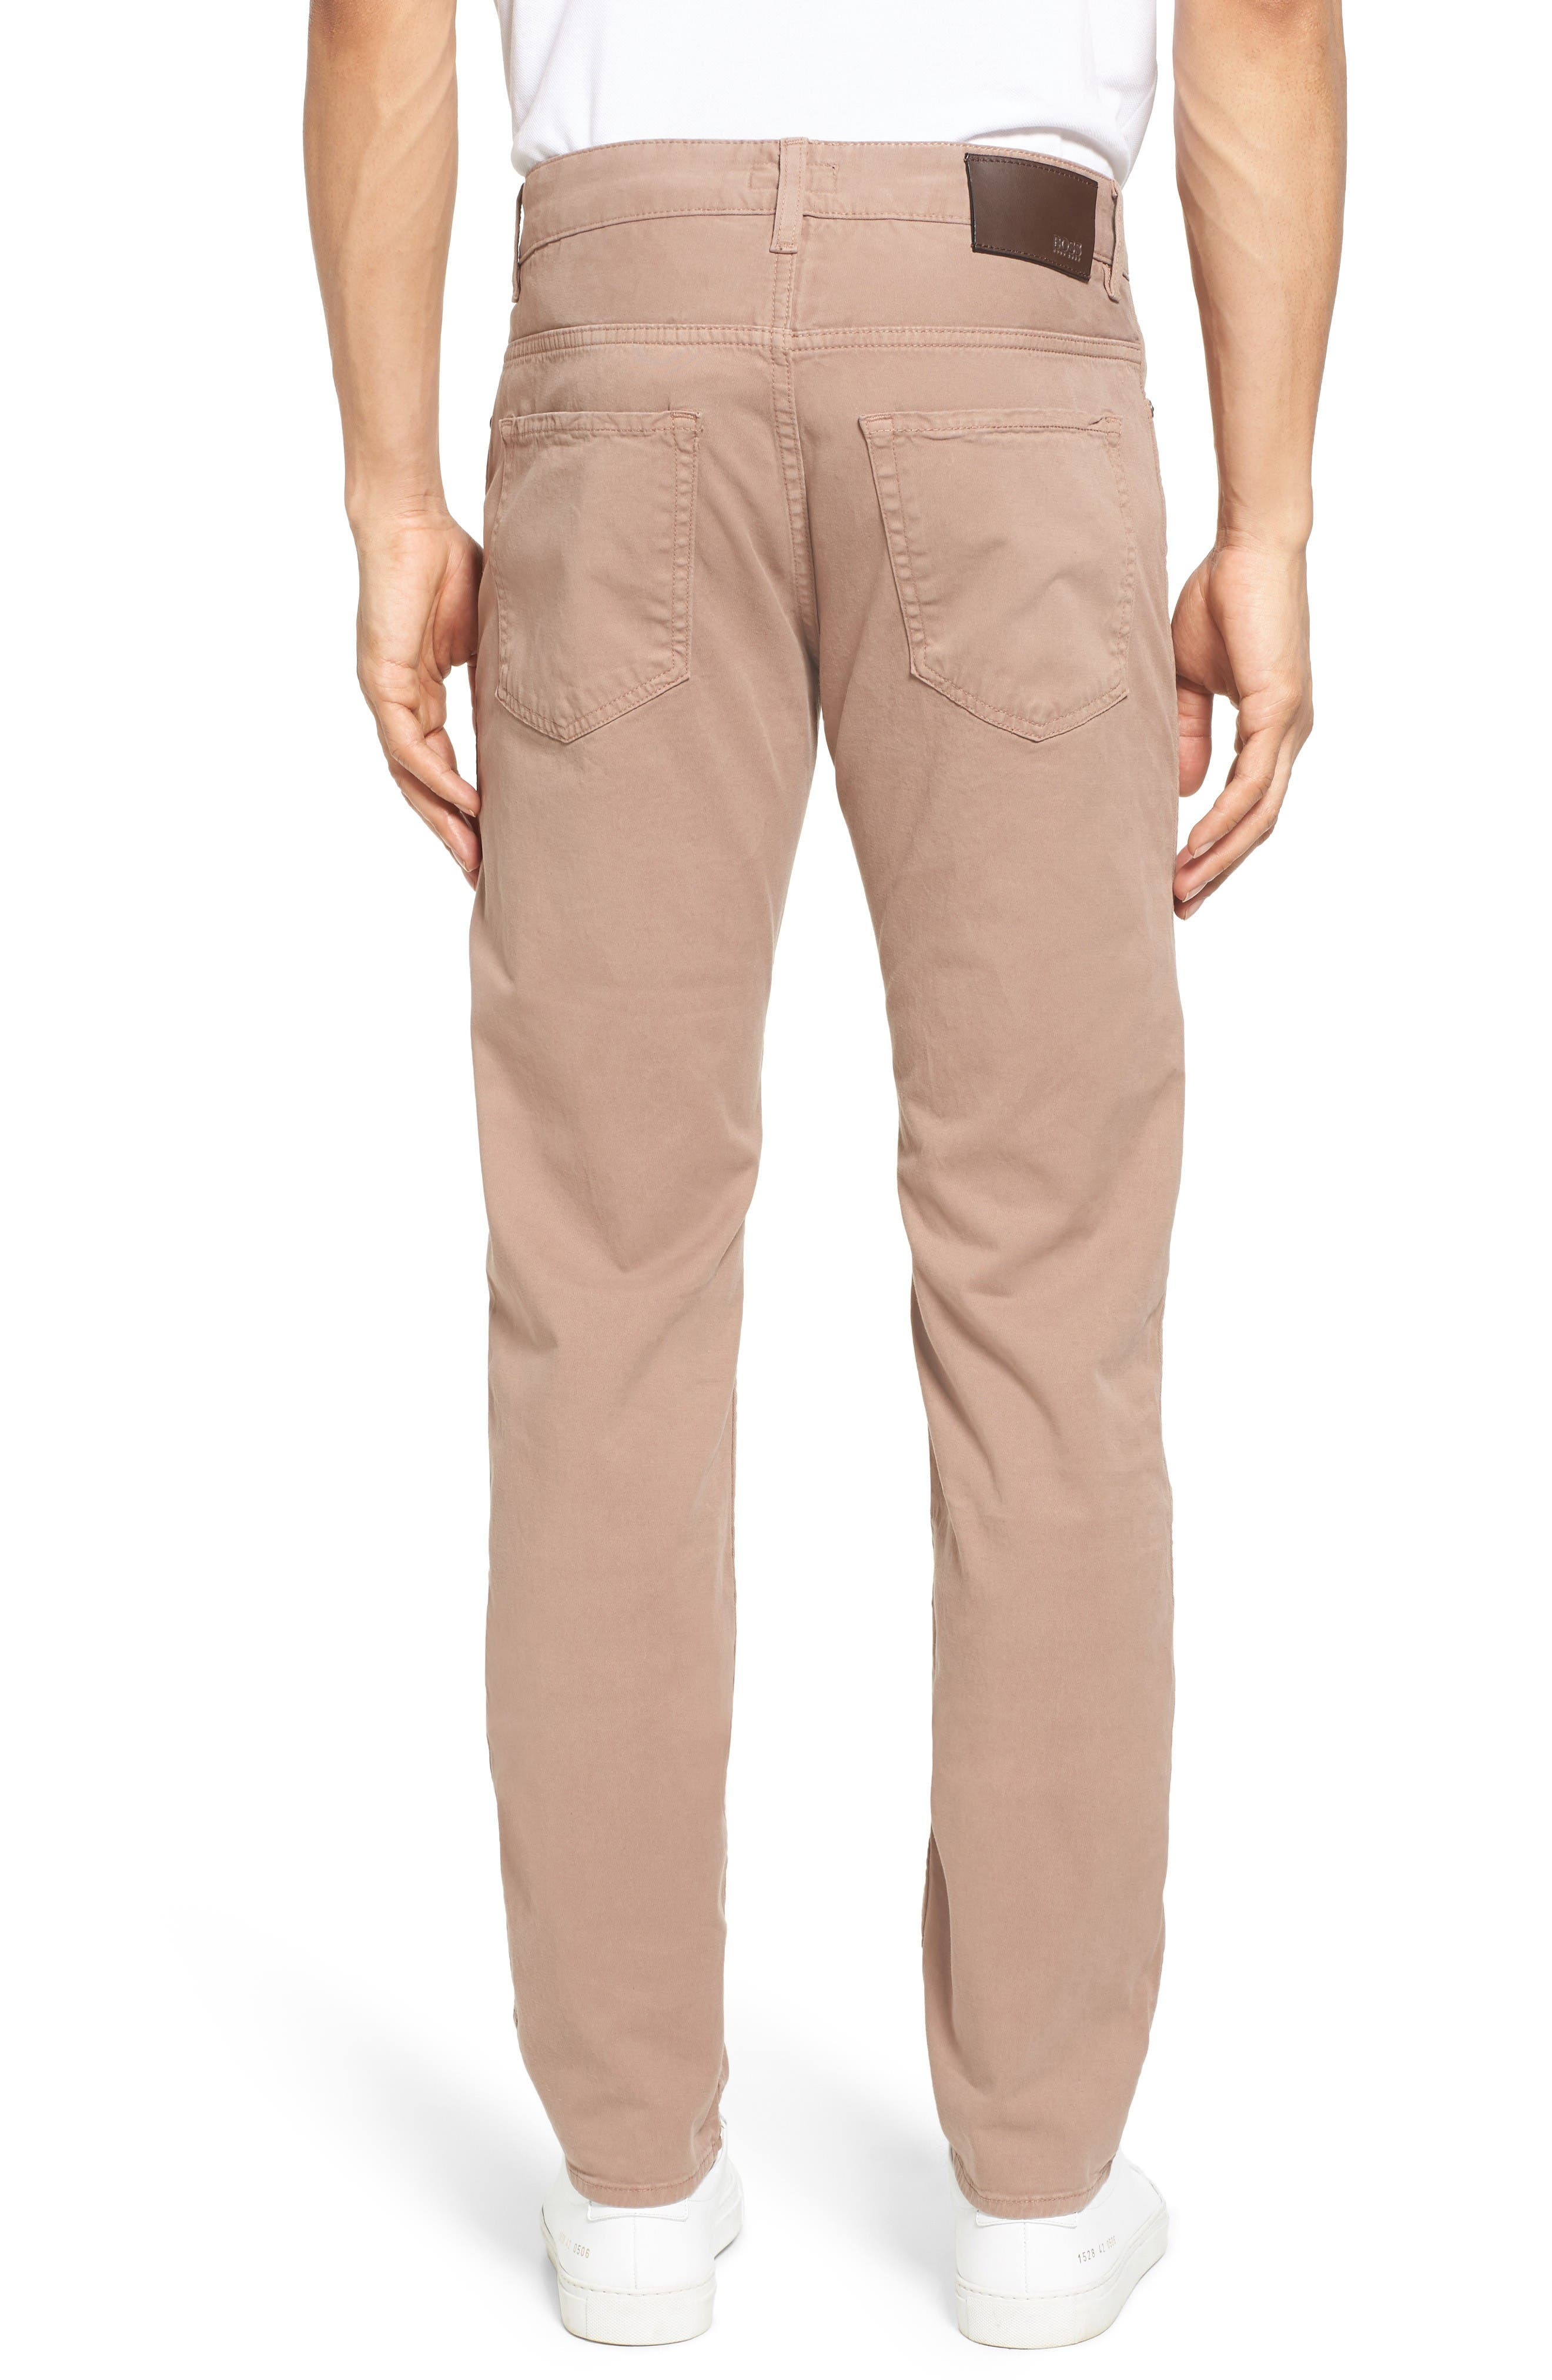 Delaware Slim Fit Stretch Cotton Pants,                             Alternate thumbnail 2, color,                             Khaki